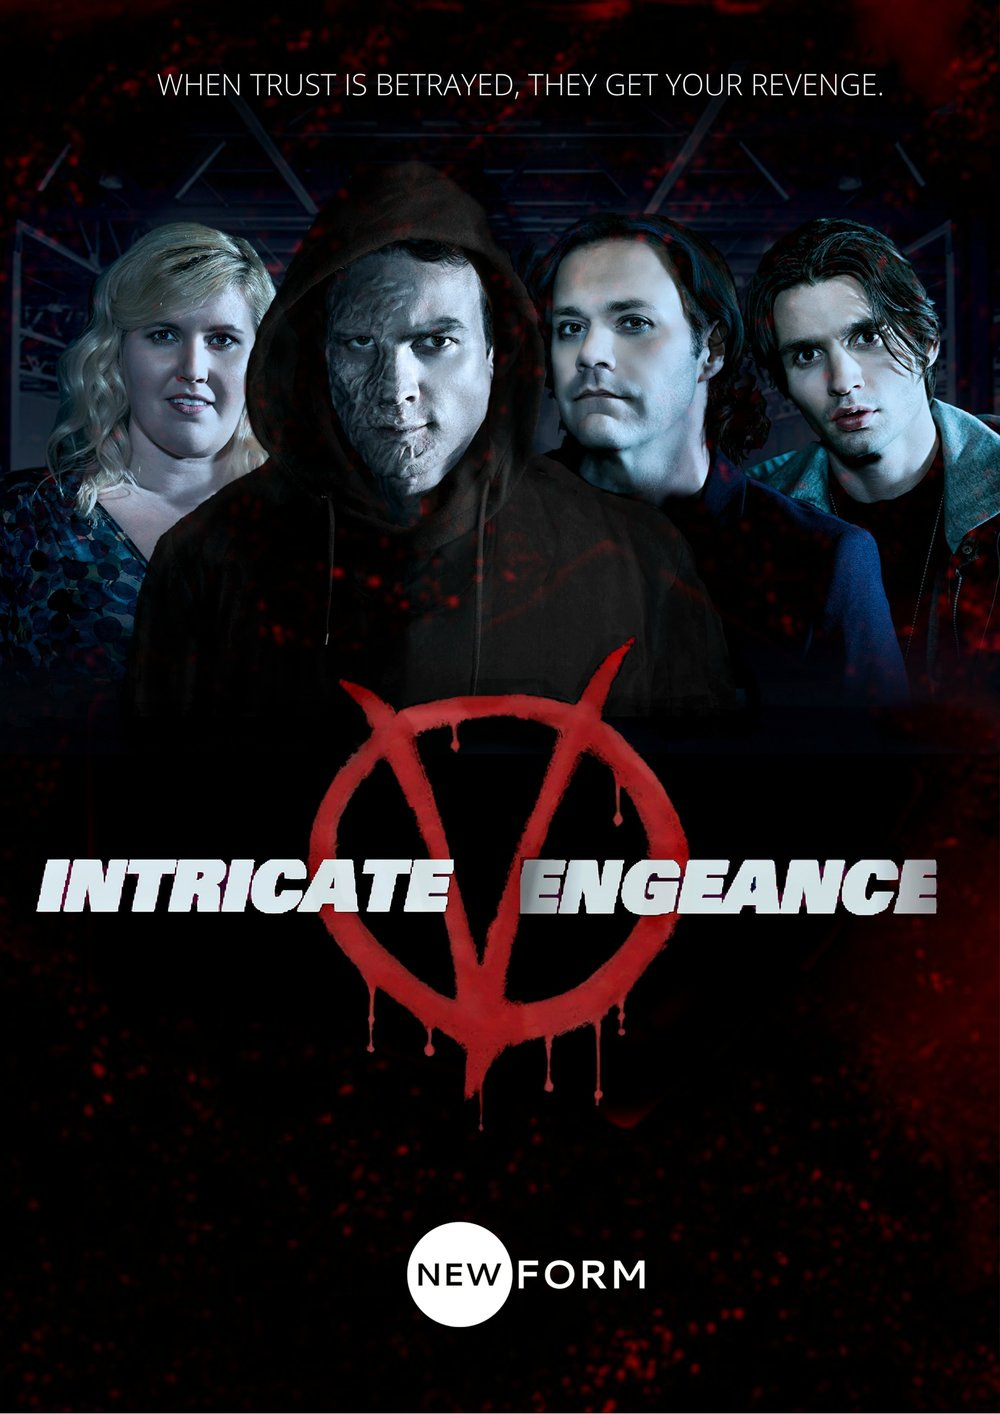 2-intricatevengeance-unboxd-poster.jpg